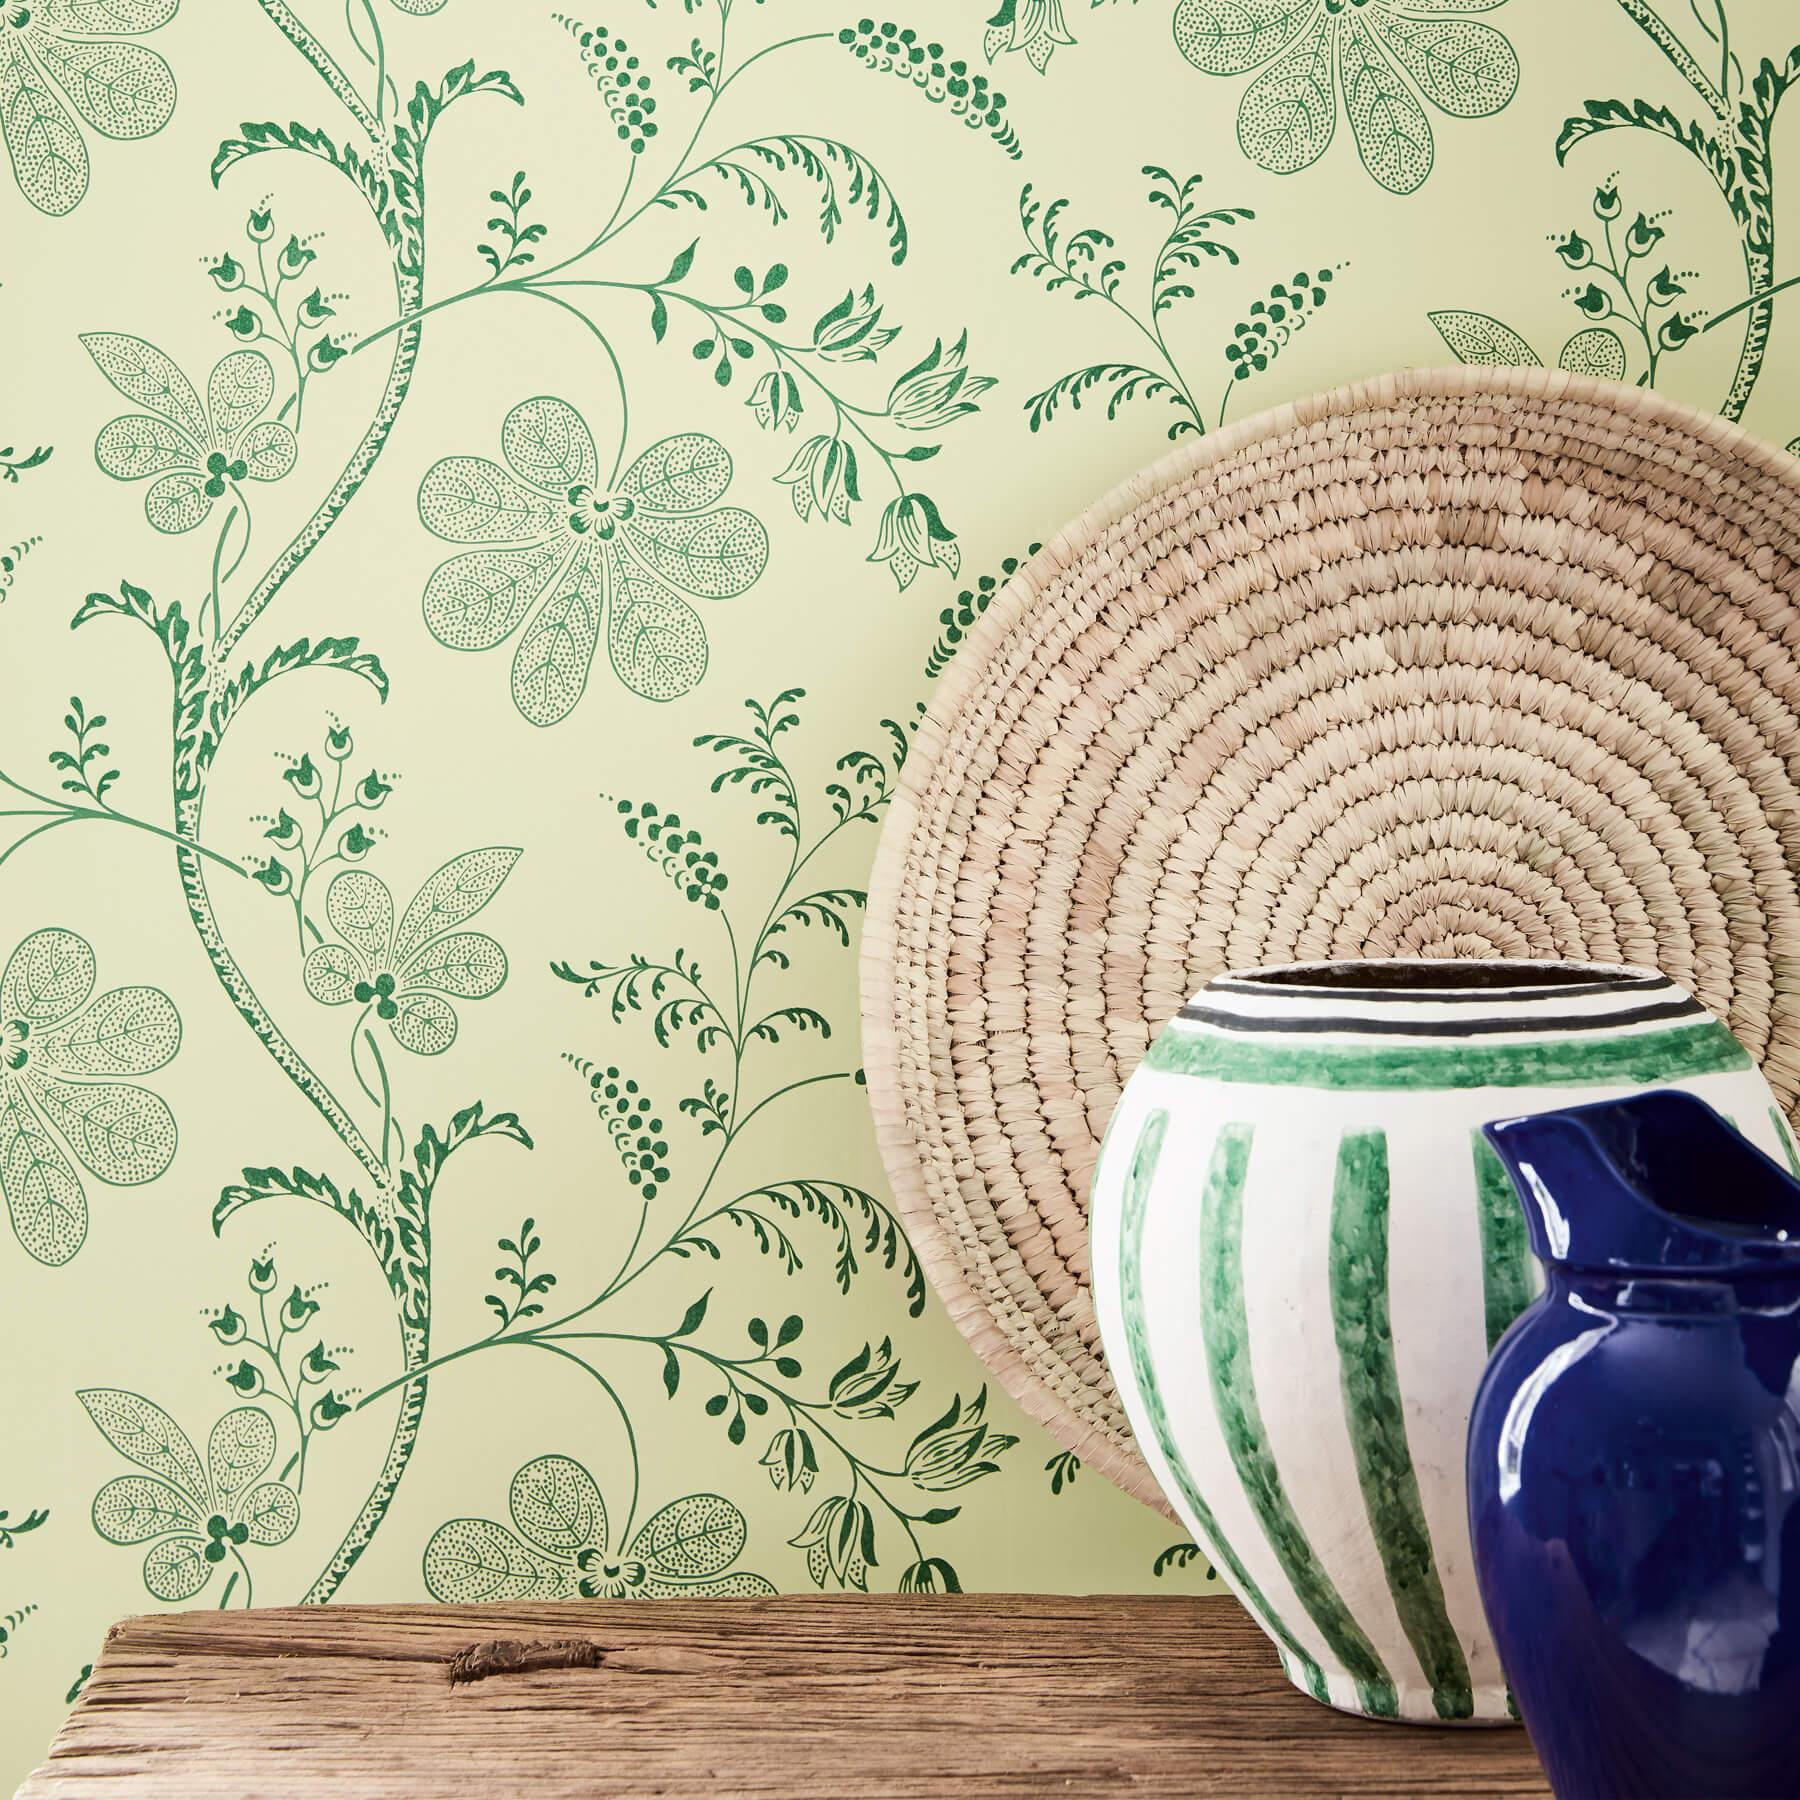 Papier peint Bedford Square Acorn - Collection London Wallpapers V de Little Greene AMB